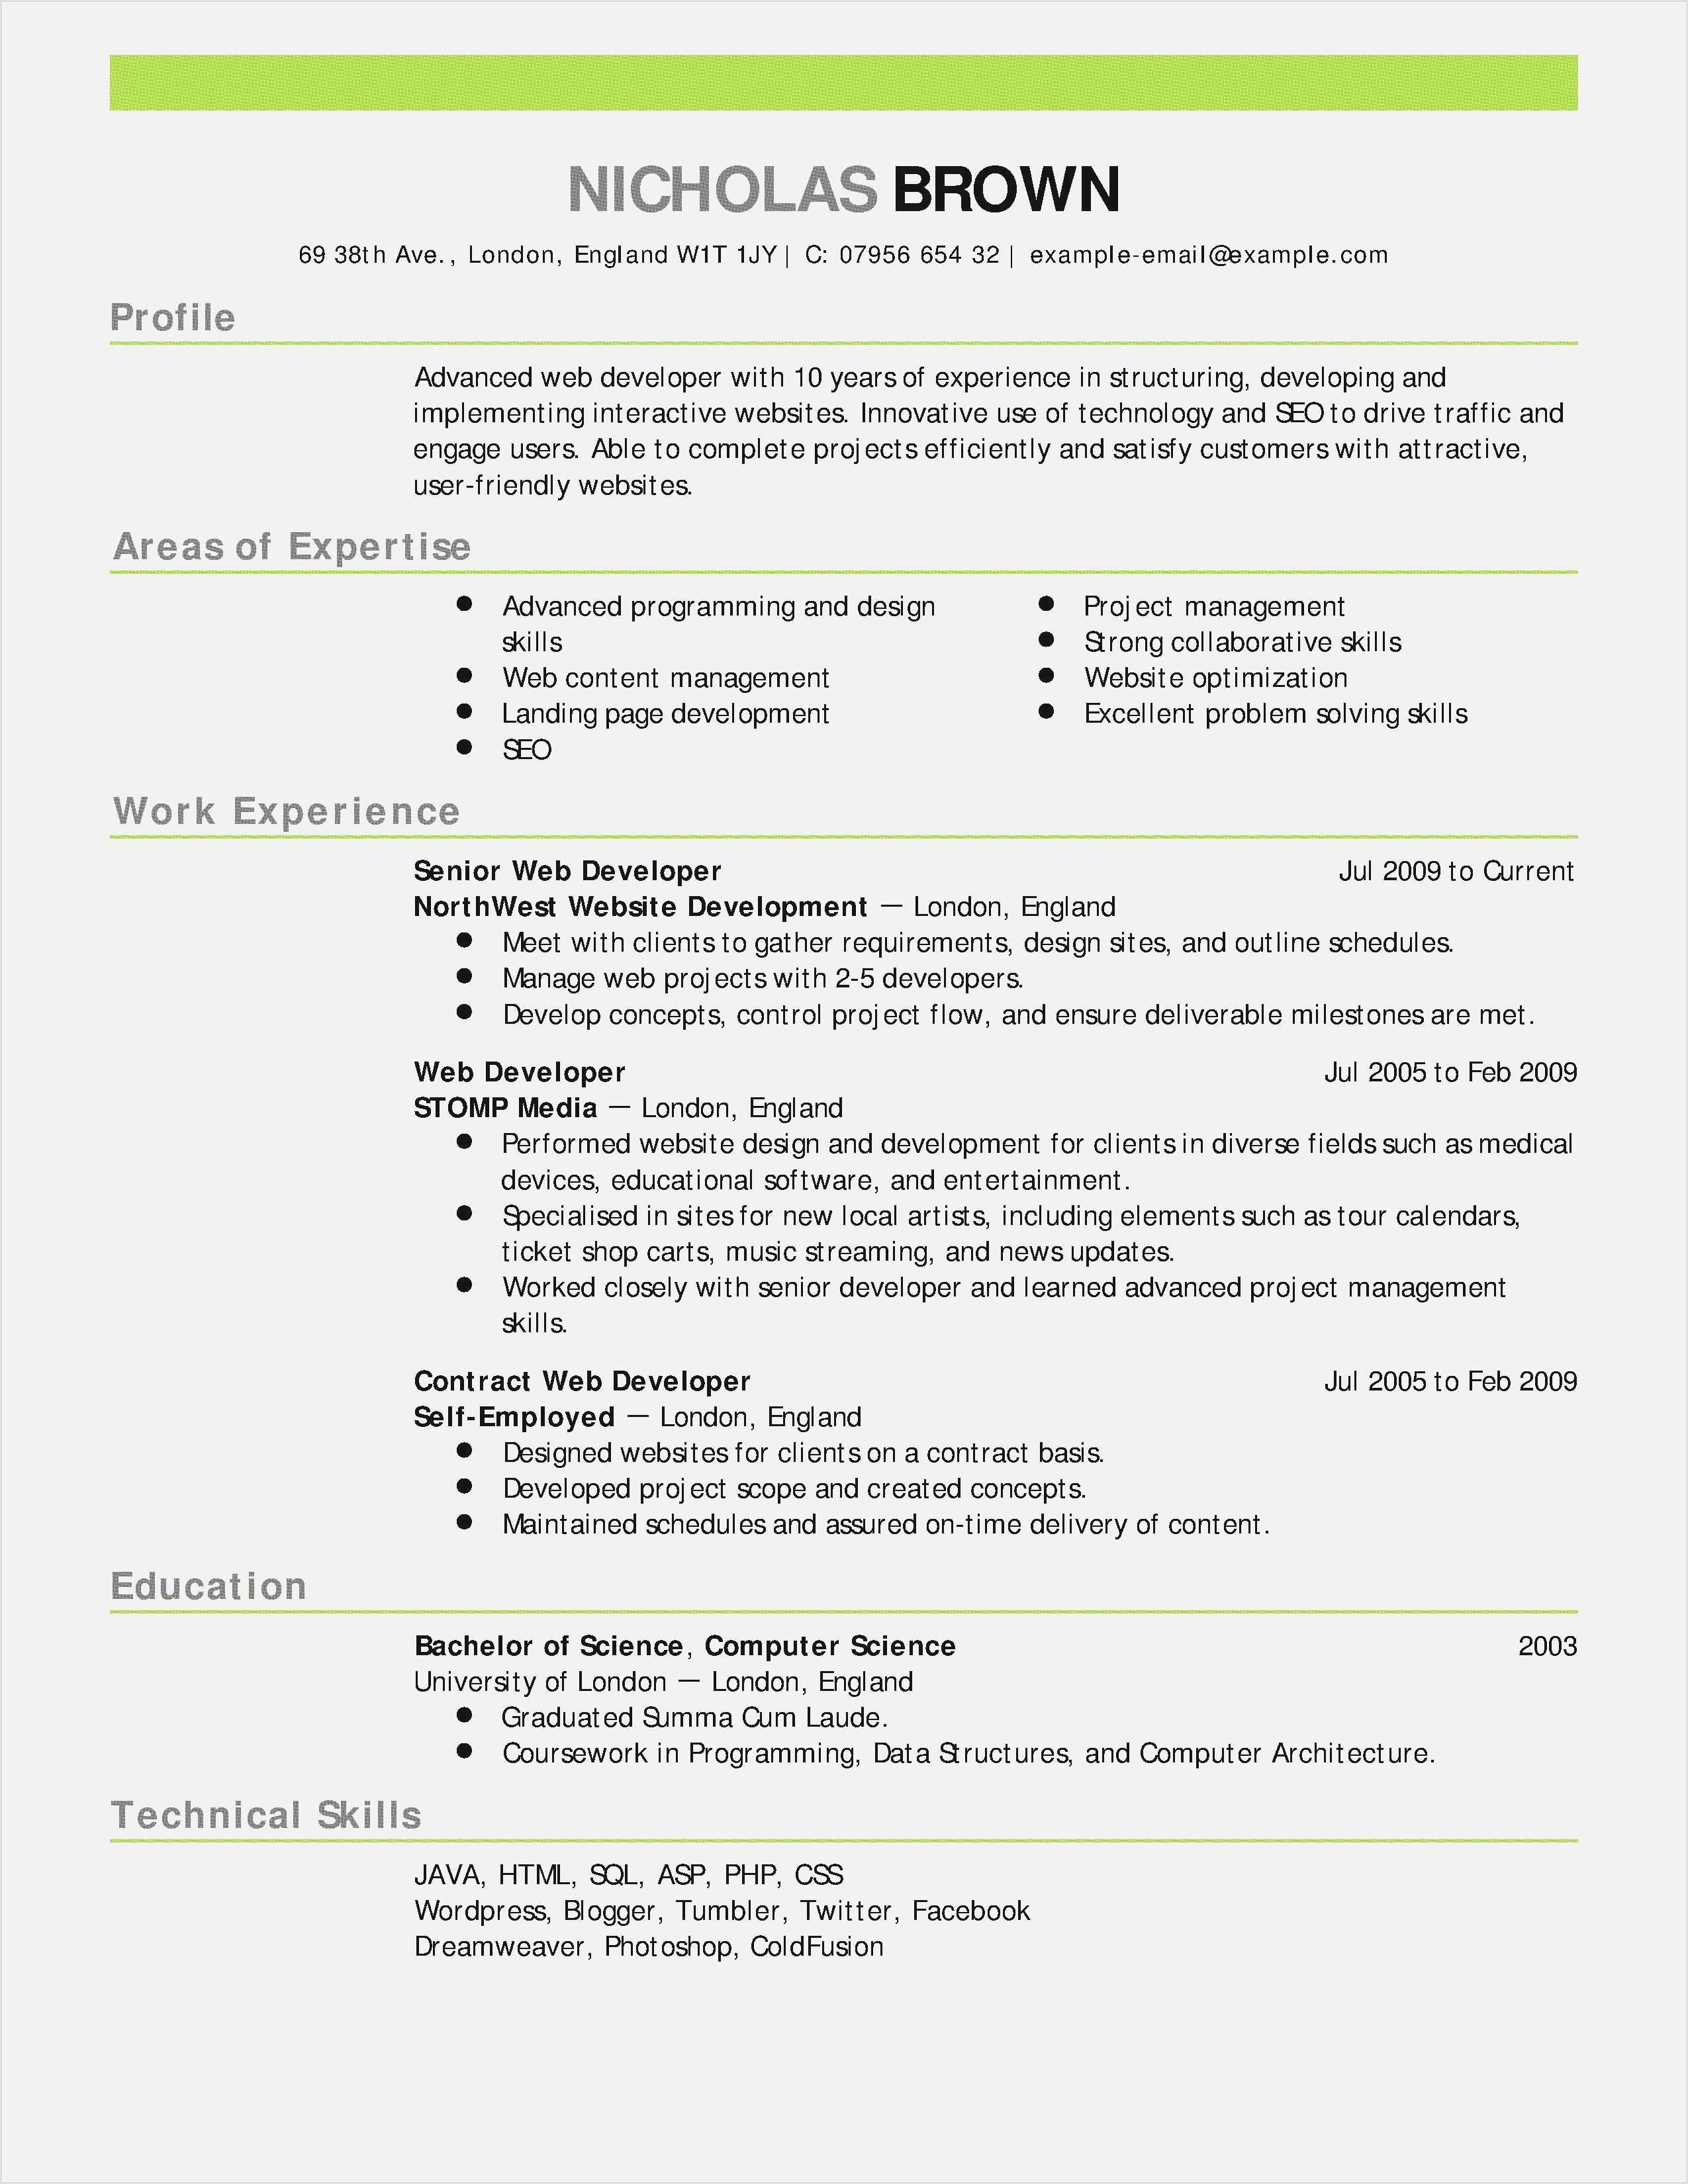 Types Of Skills for Resume - Types Skills for Resume Elegant Cv Services New Skills Resume